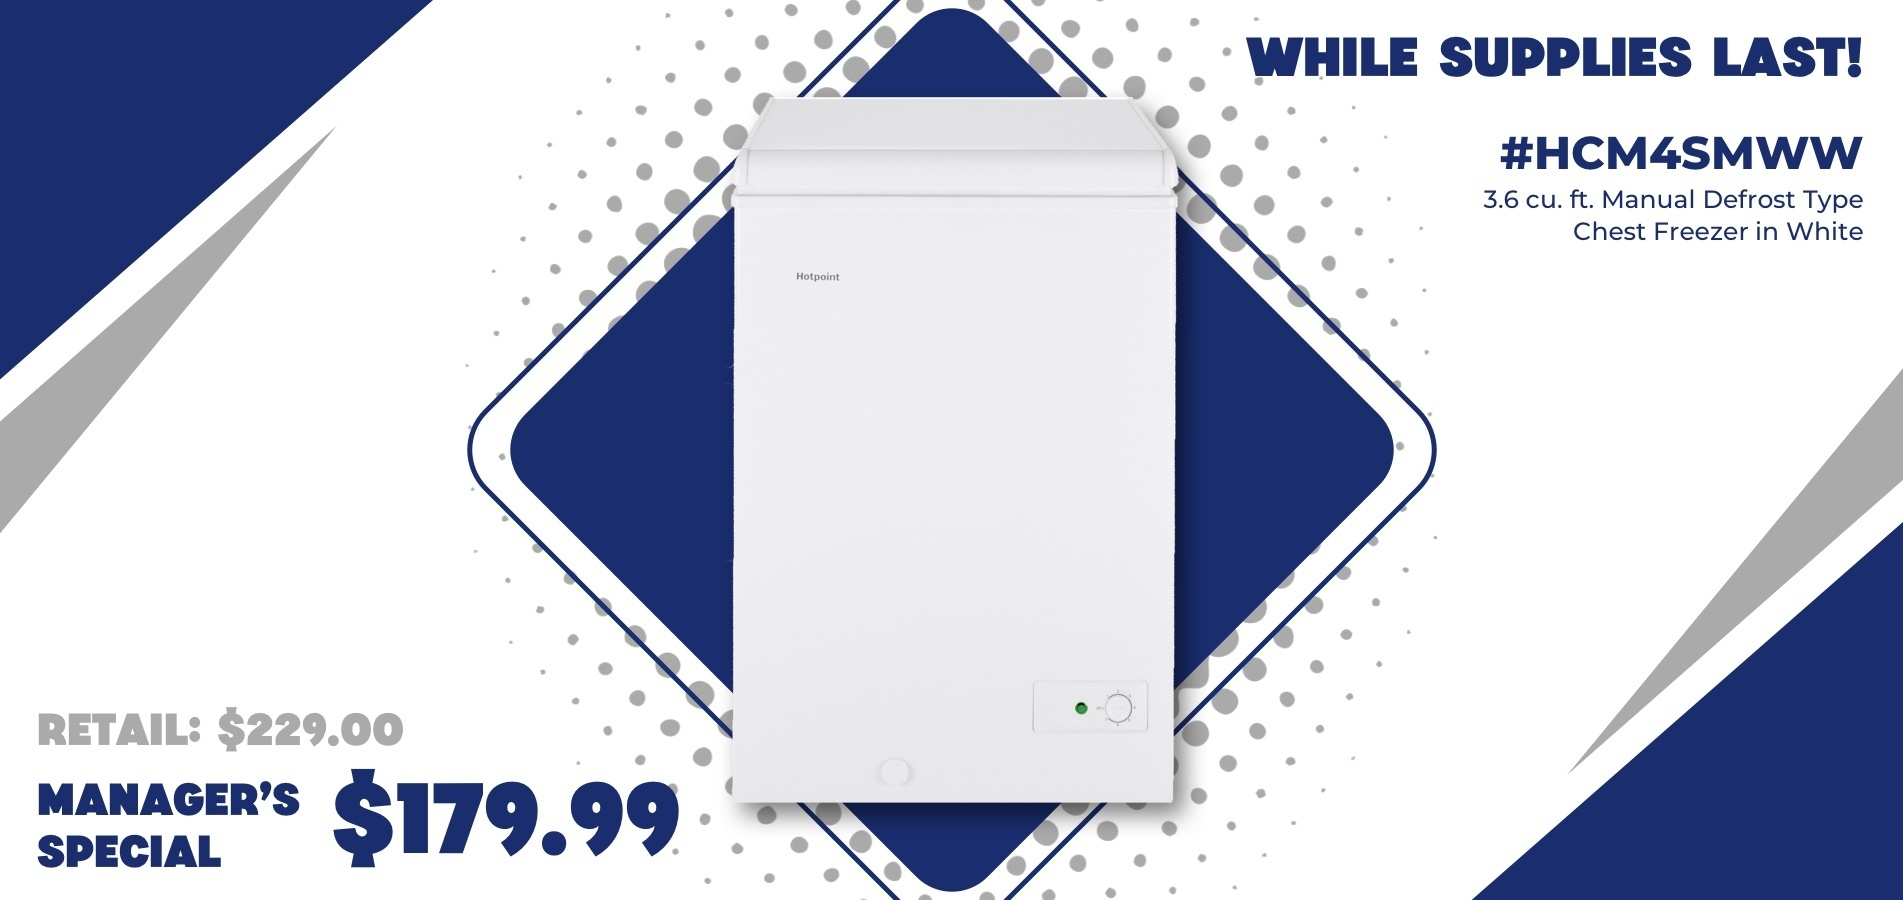 Hotpoint Freezer: Manager Special